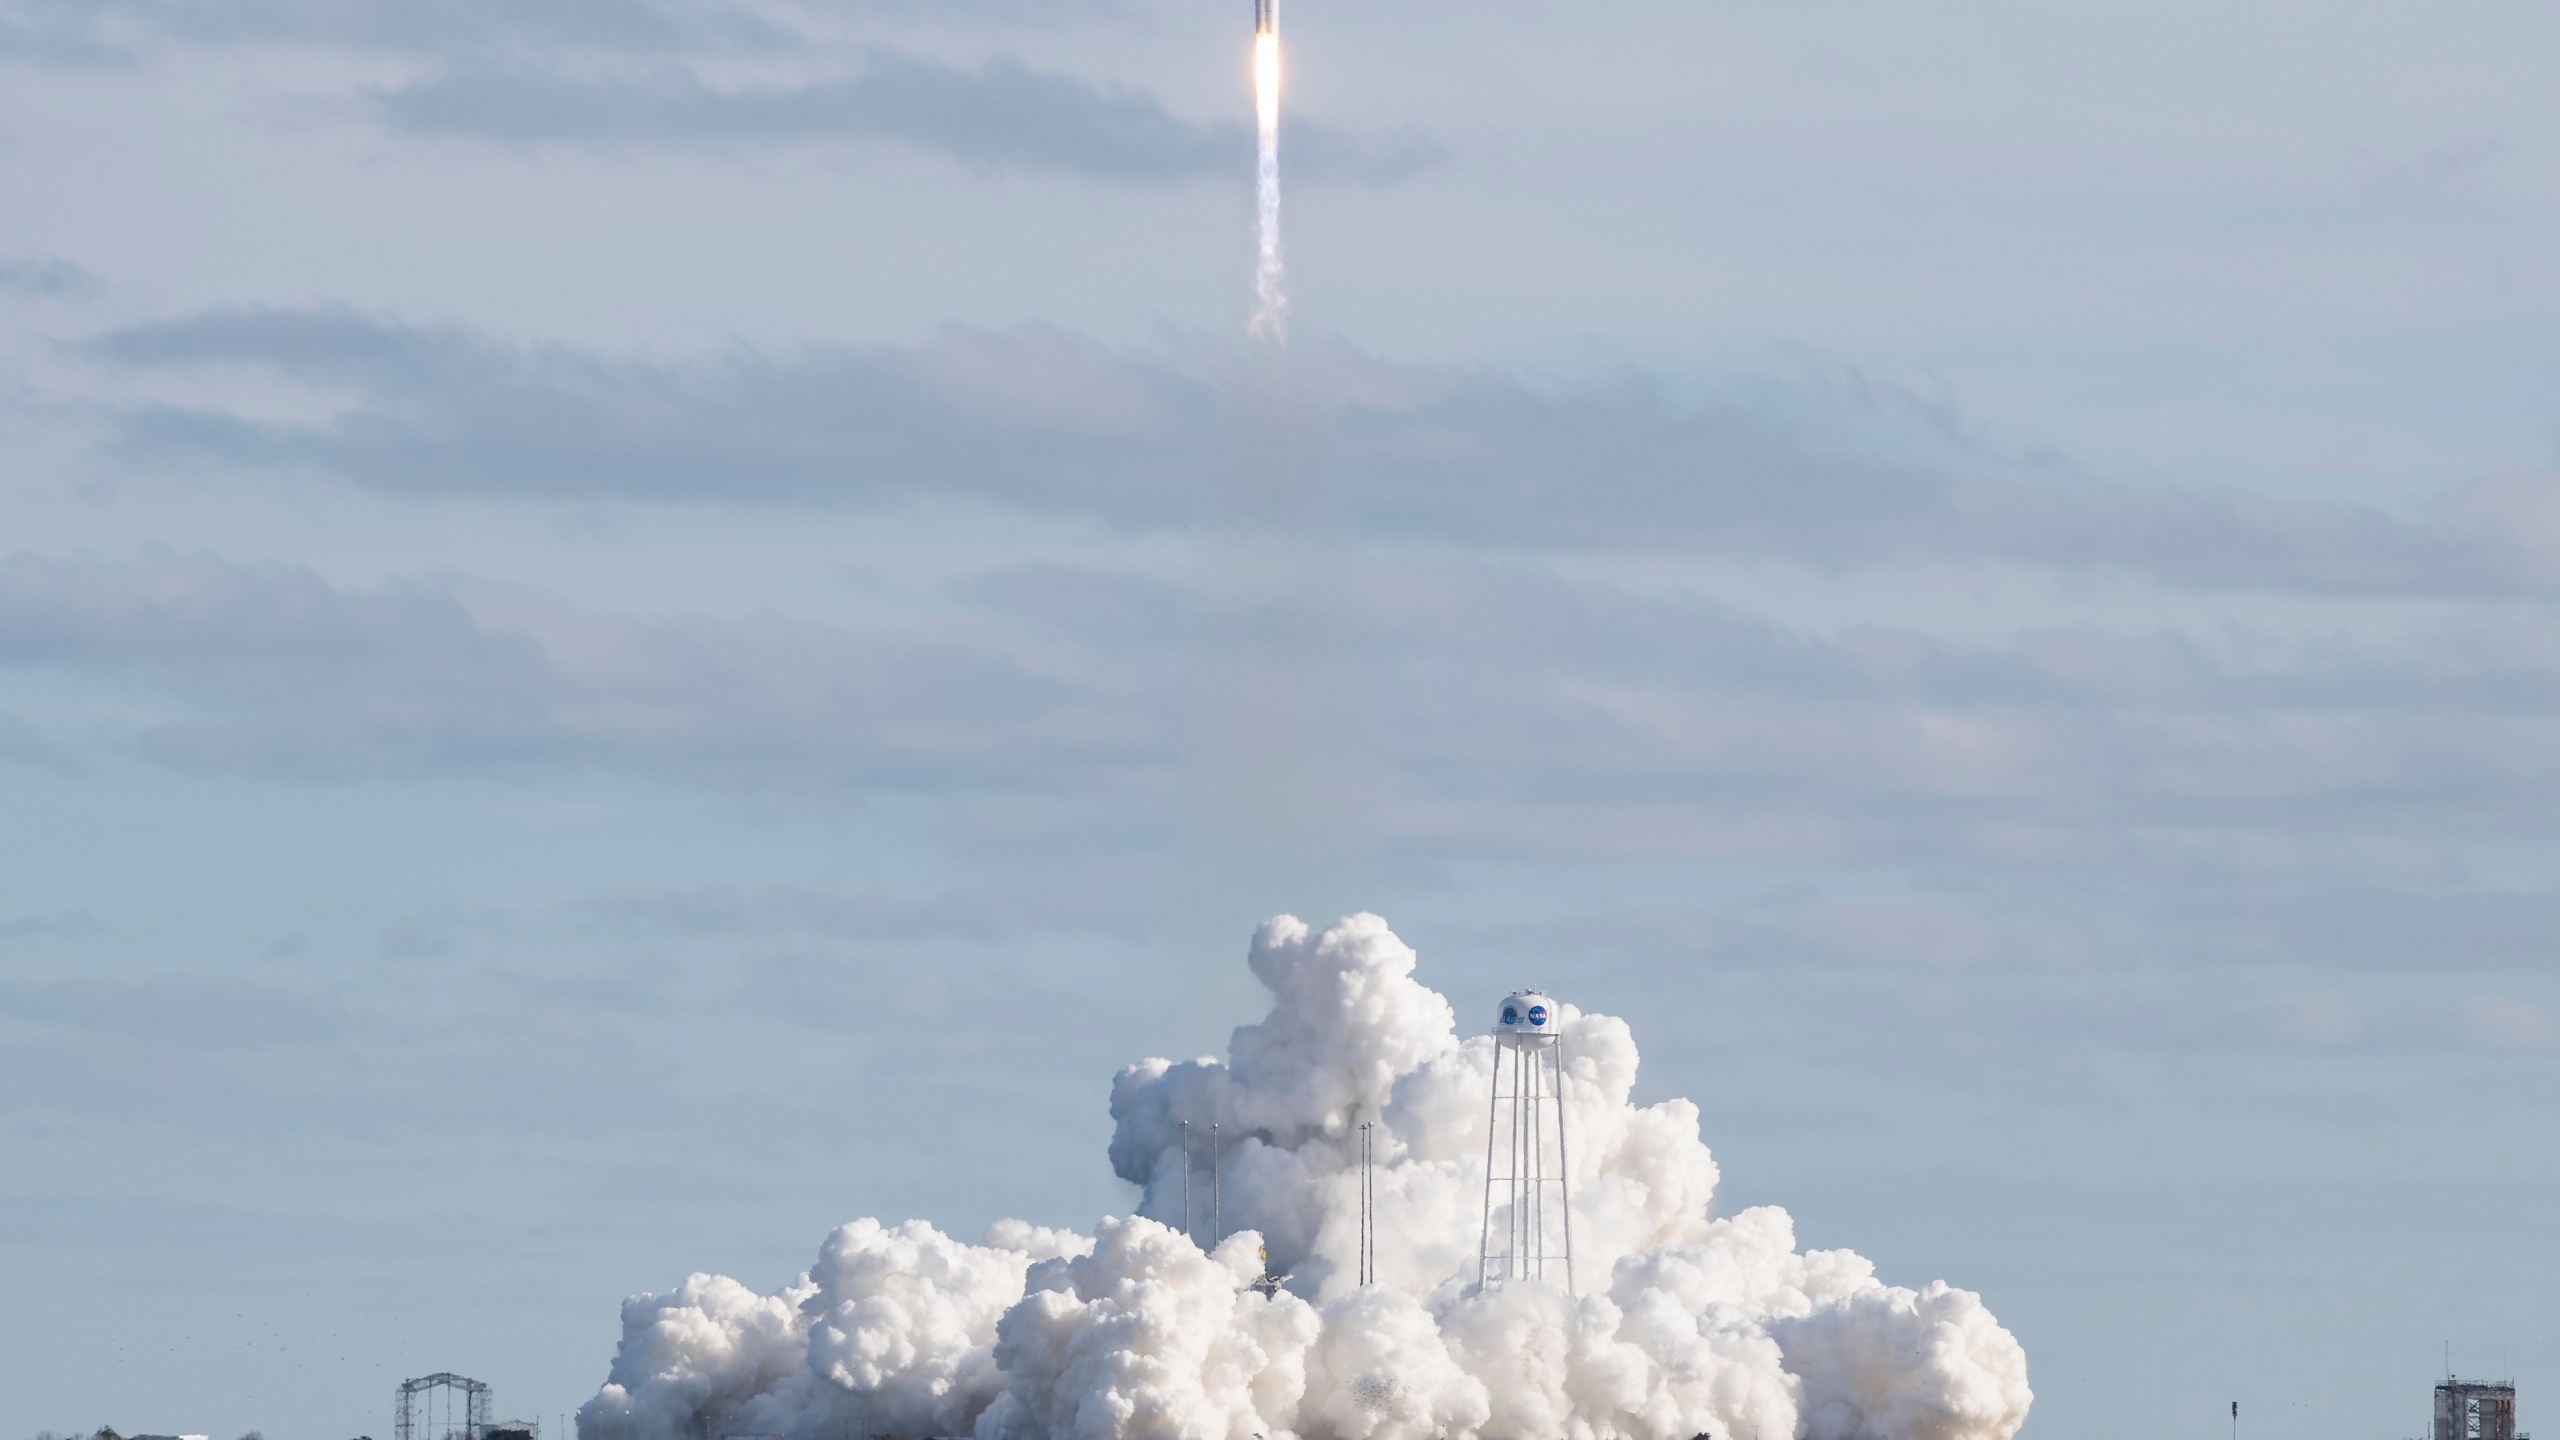 Northrop Grumman Antares CRS-13 Launch